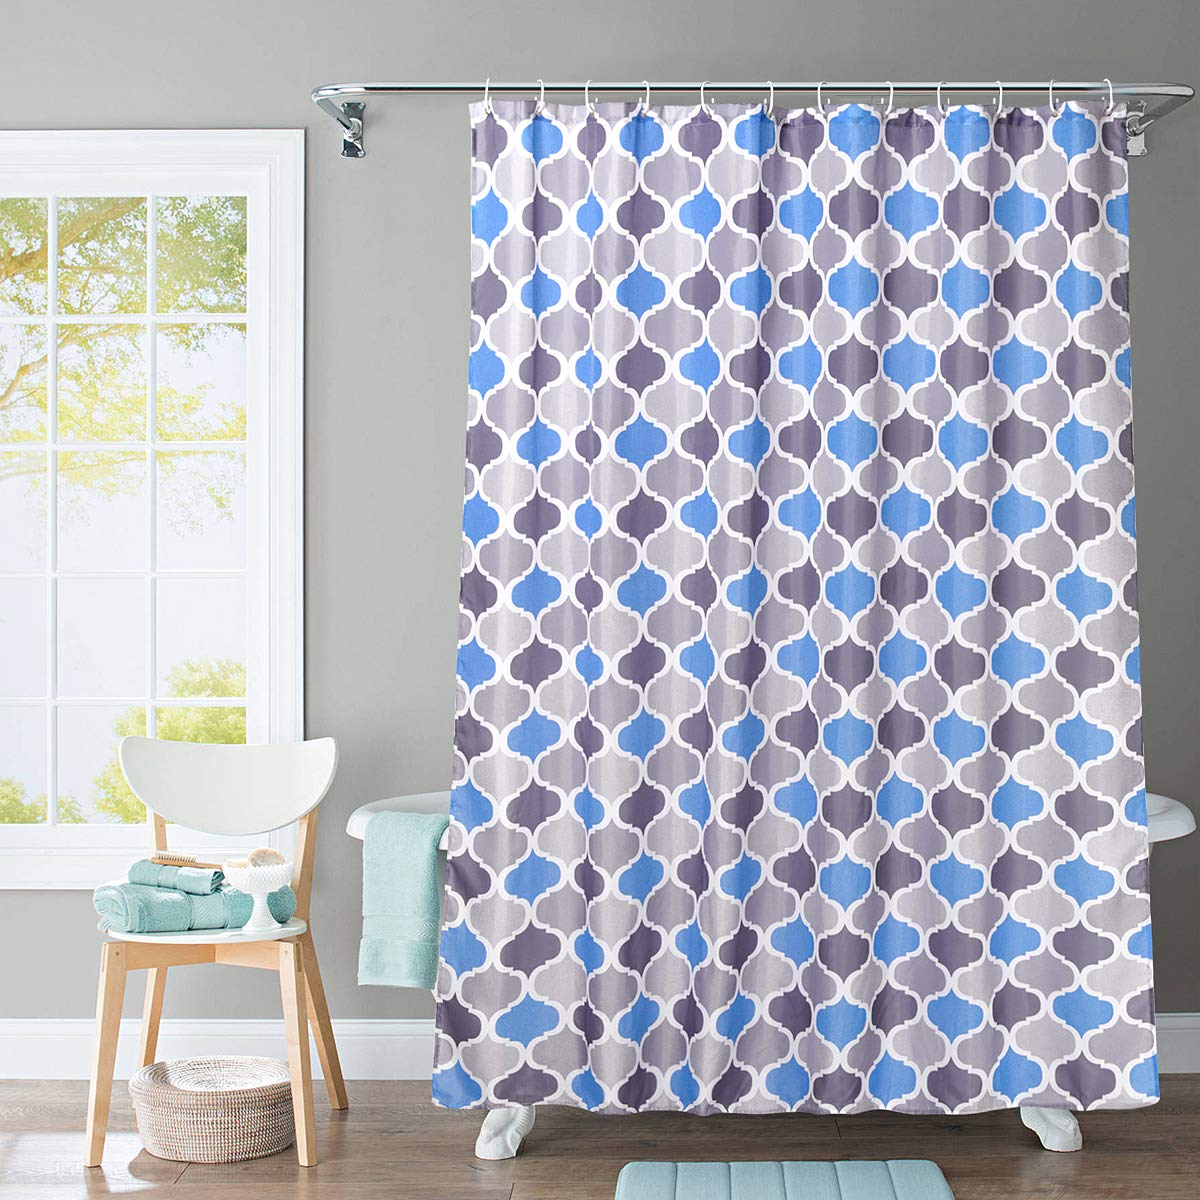 JRing Shower Curtain Polyester Fabric Machine Washable with 12 Hooks 72x72 Inch (Bluegrey)